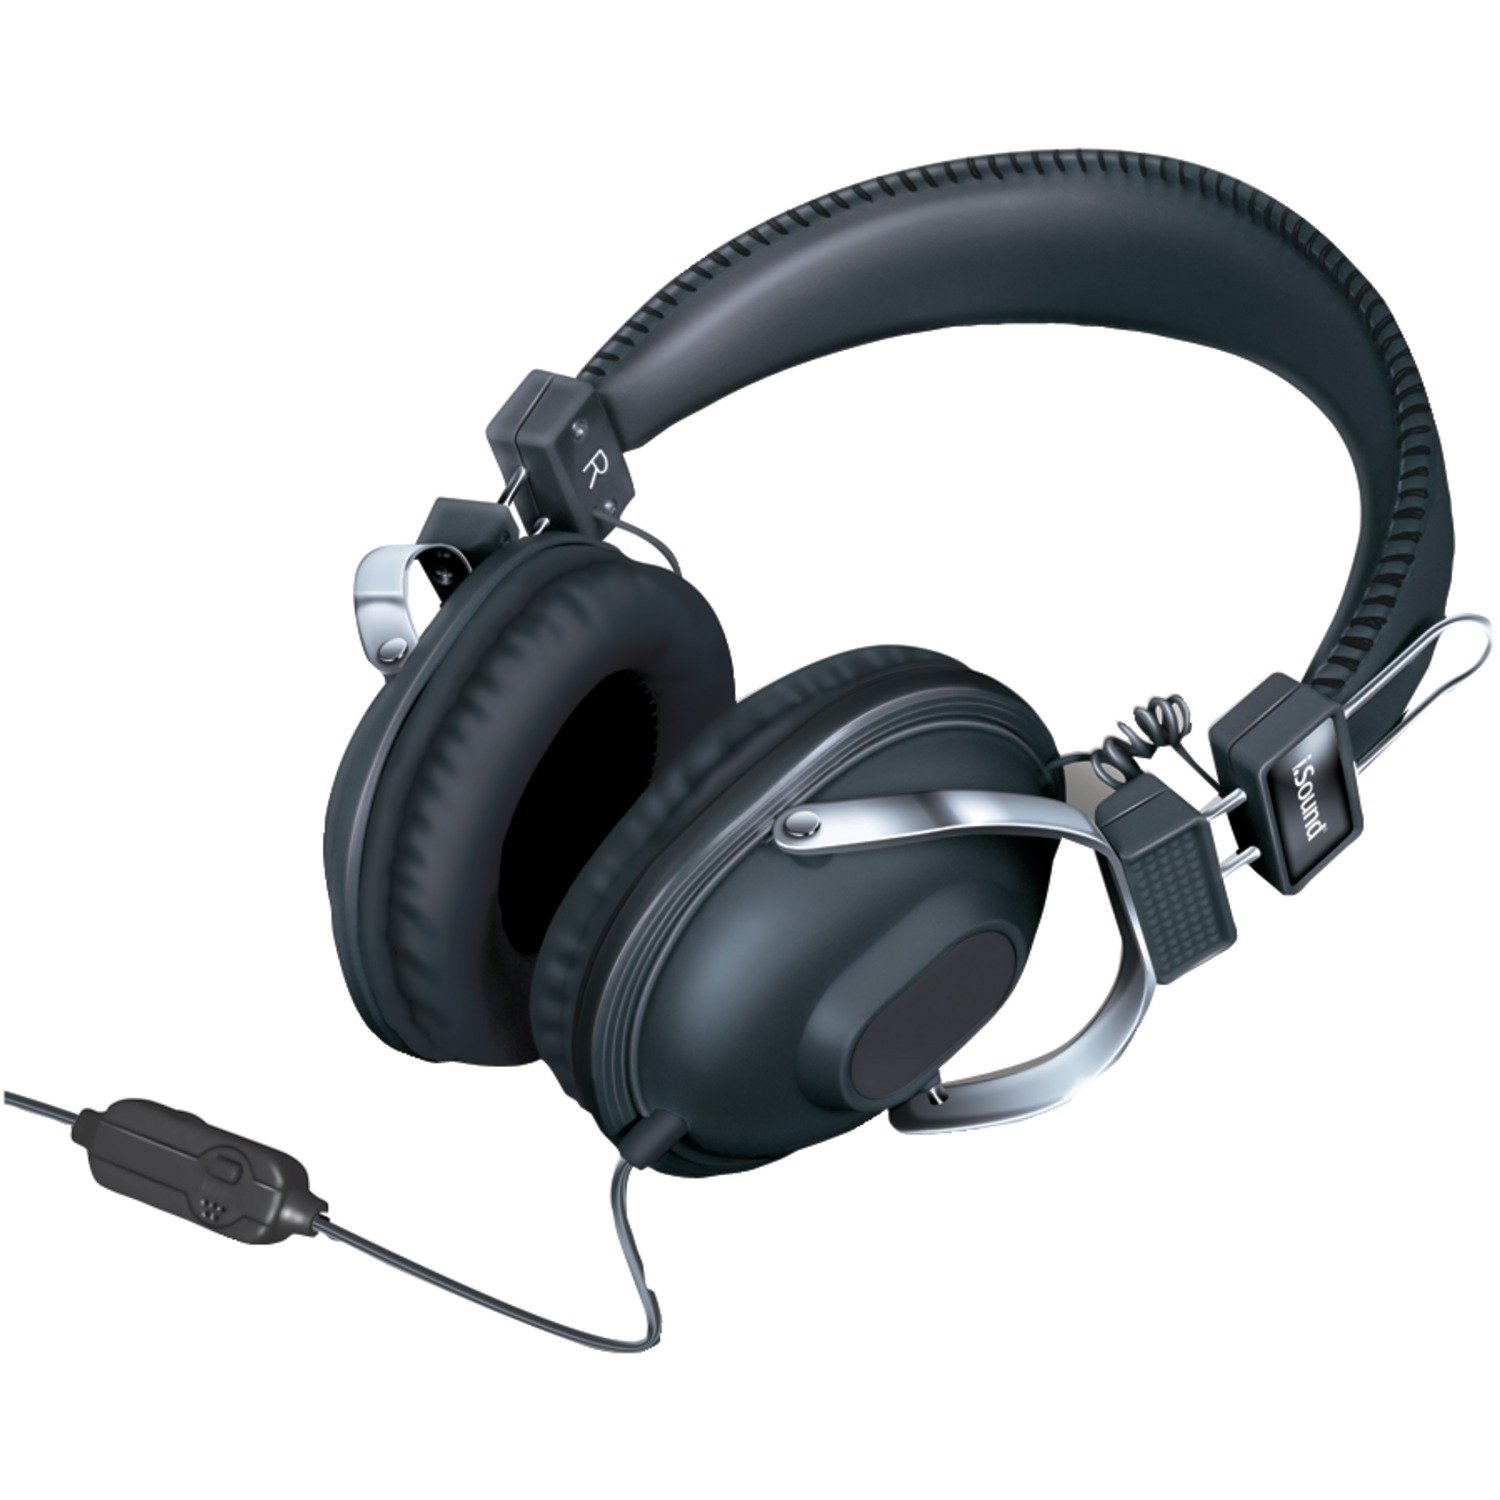 iSound HM-260 Dynamic Stereo Headphones with in-line Mic and Volume controls (black)